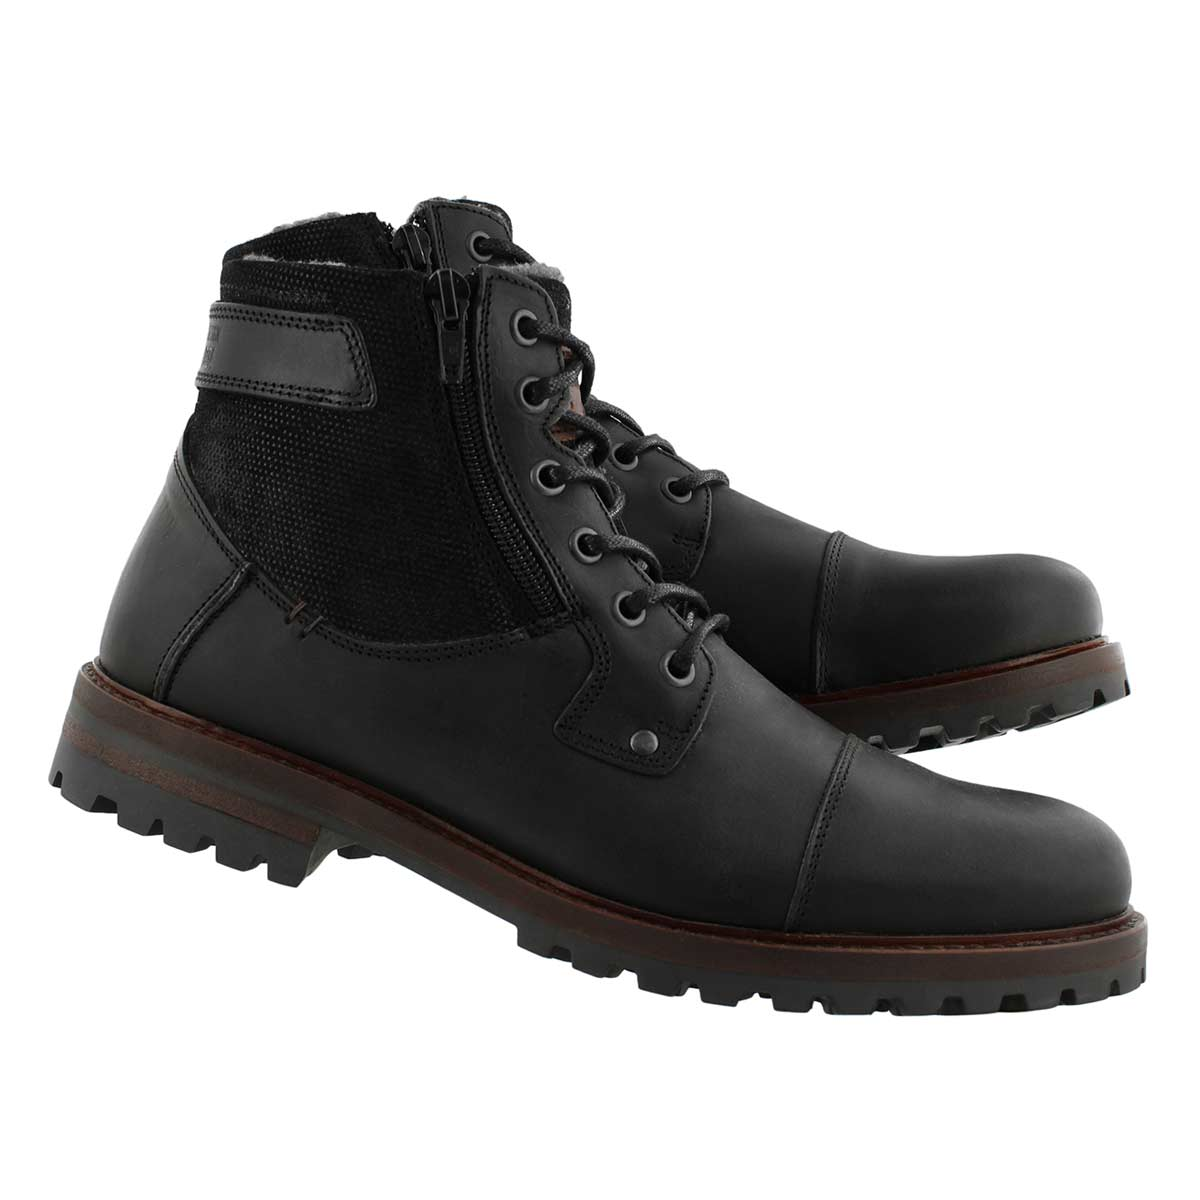 Mns Baden black lace up ankle boot